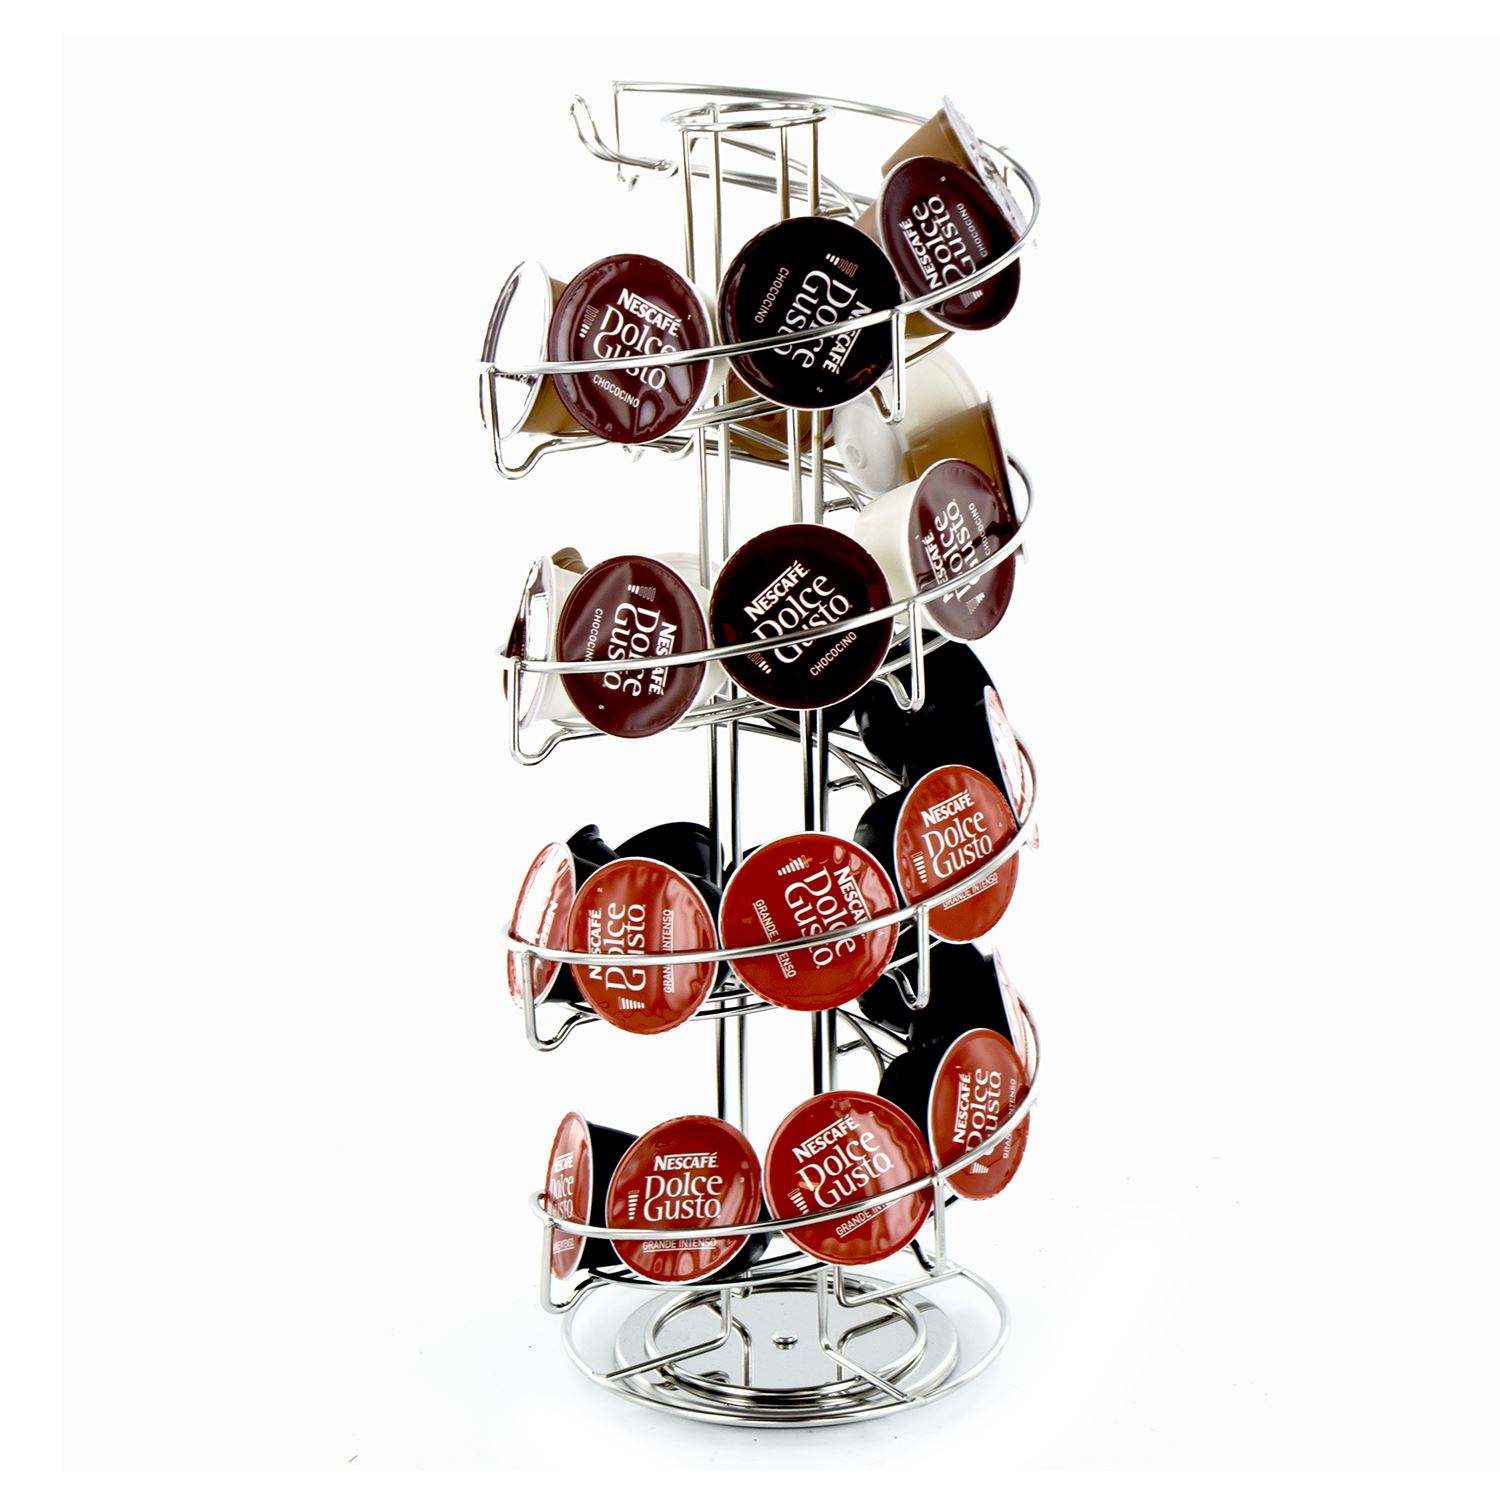 coffee capsule pod rotating standing tower rack dolce gusto tassimo nespresso ebay. Black Bedroom Furniture Sets. Home Design Ideas